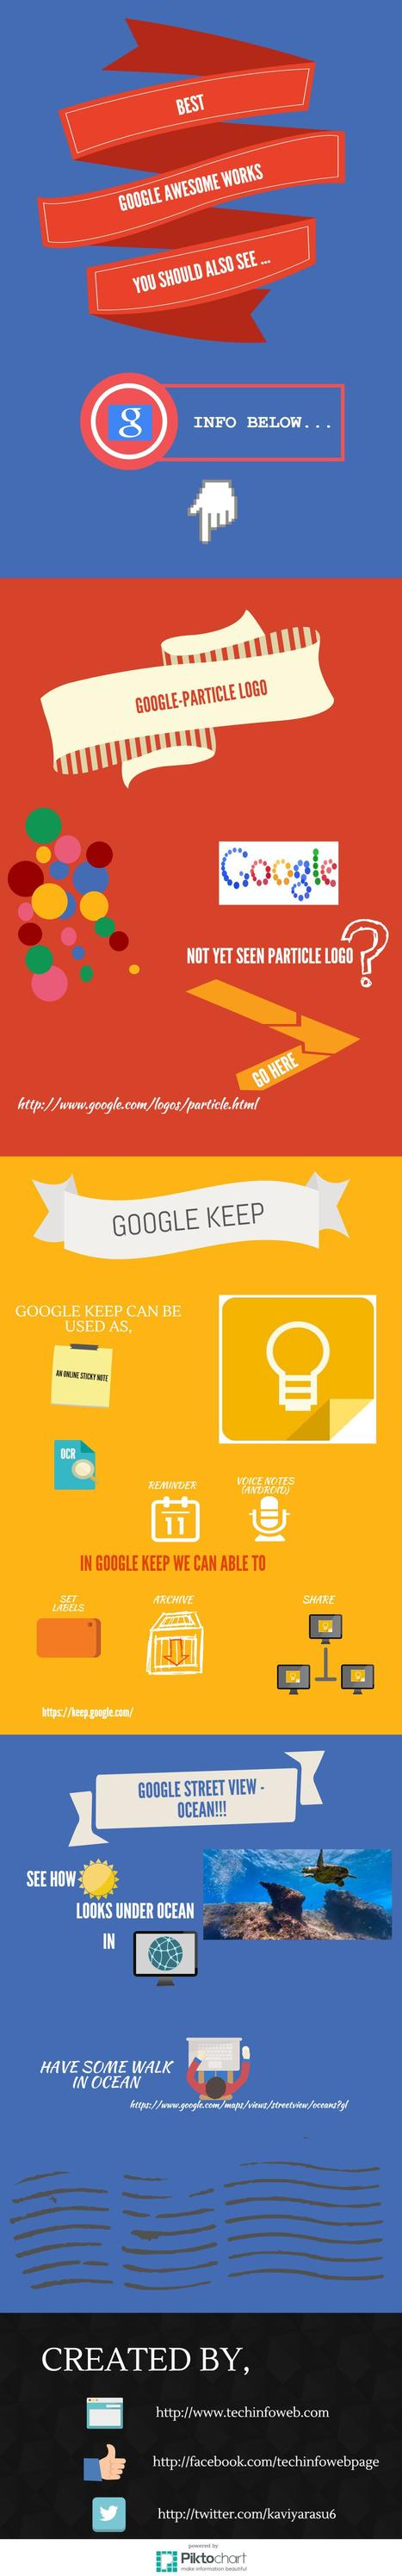 Google awesome works you should not miss | Techinfoweb | Techinfoweb | Scoop.it